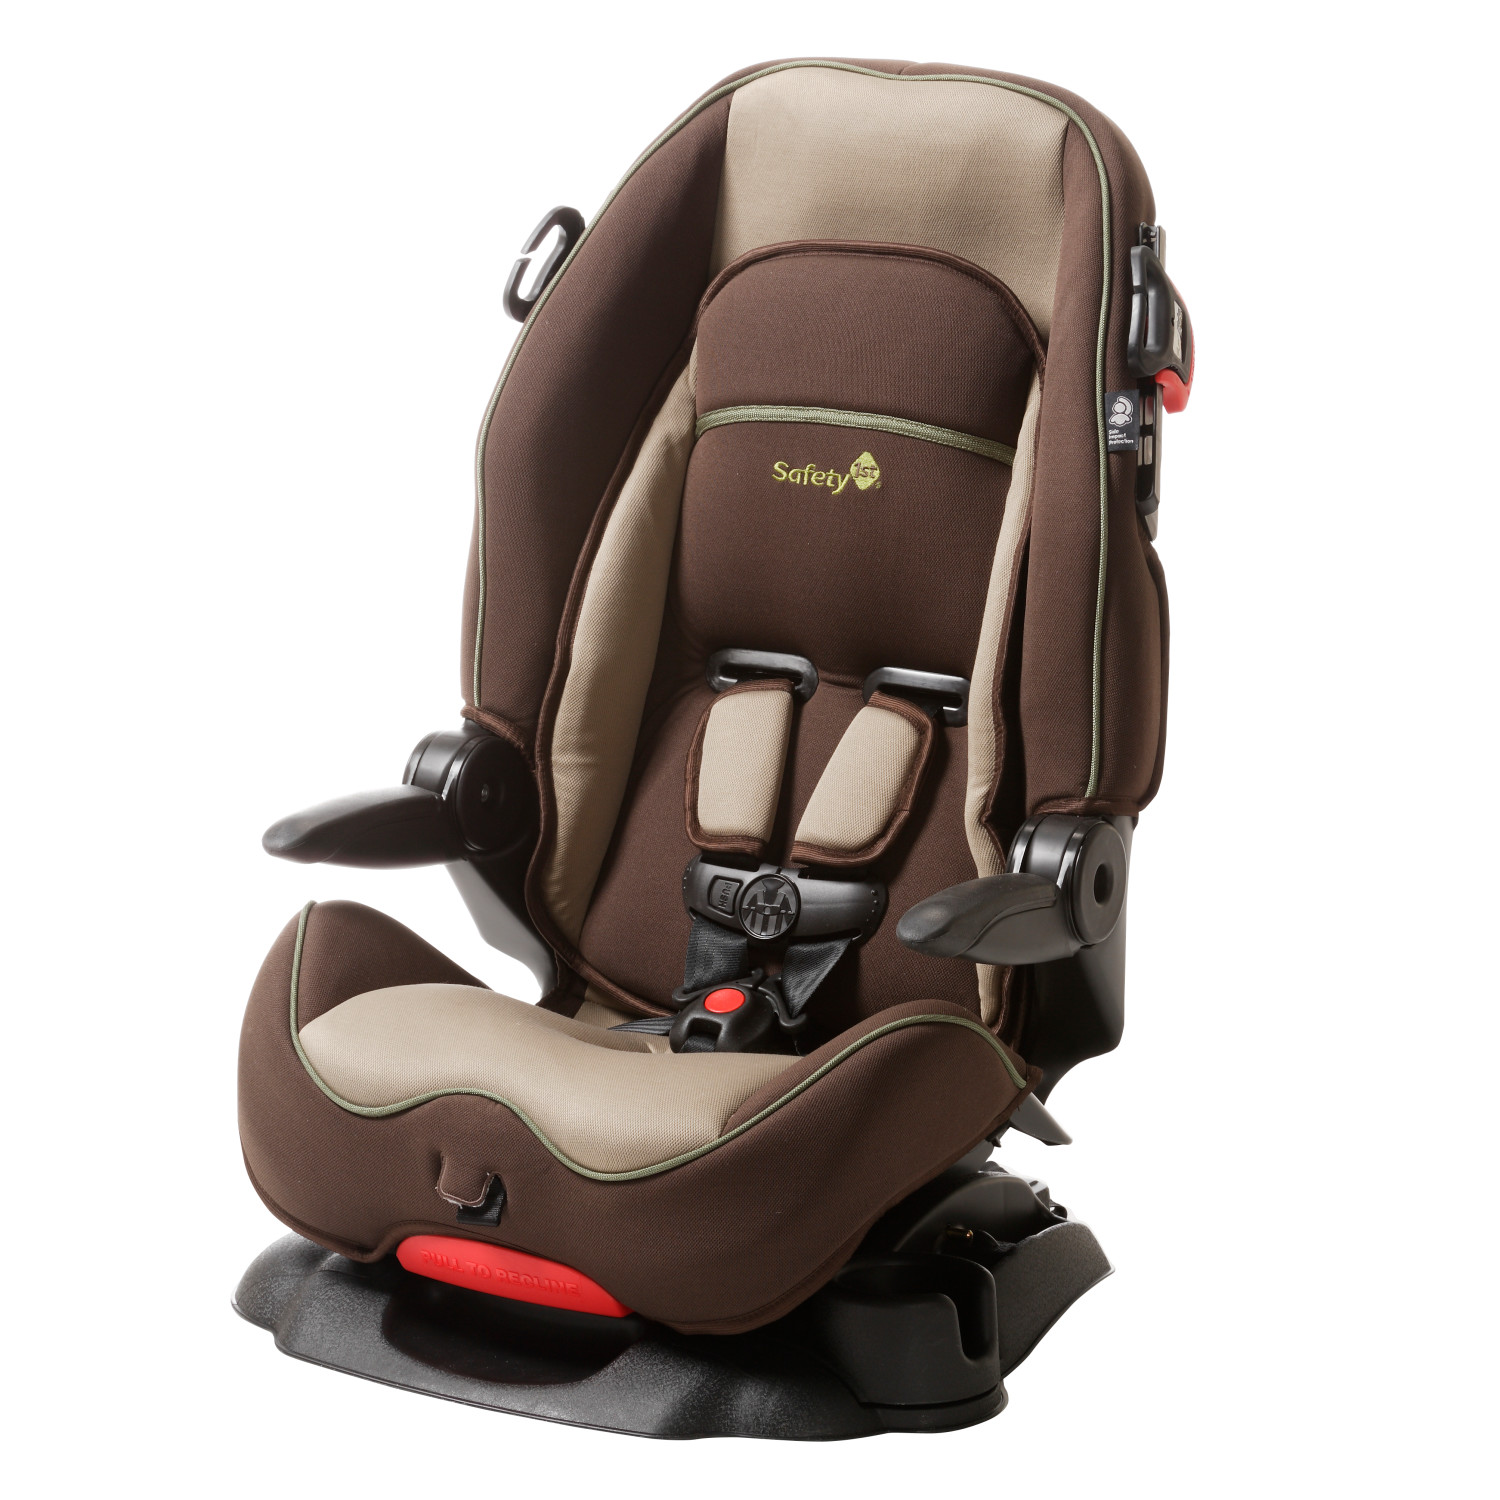 safety 1st summit high back booster car seat ebay. Black Bedroom Furniture Sets. Home Design Ideas